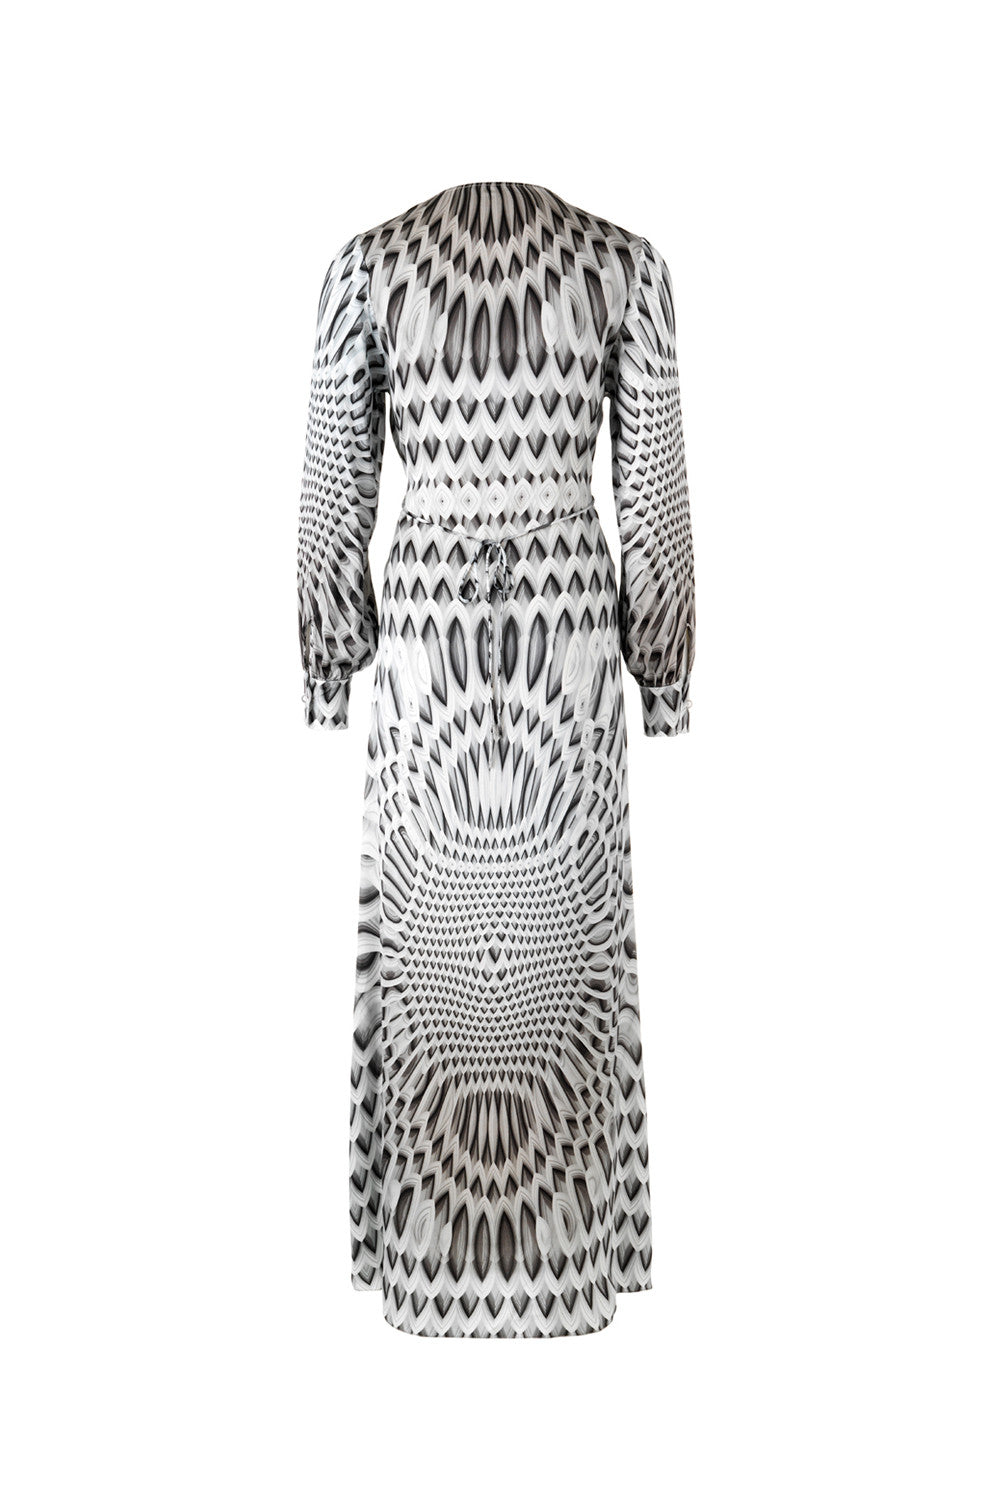 Juno Dress - Maternity - Madderson London